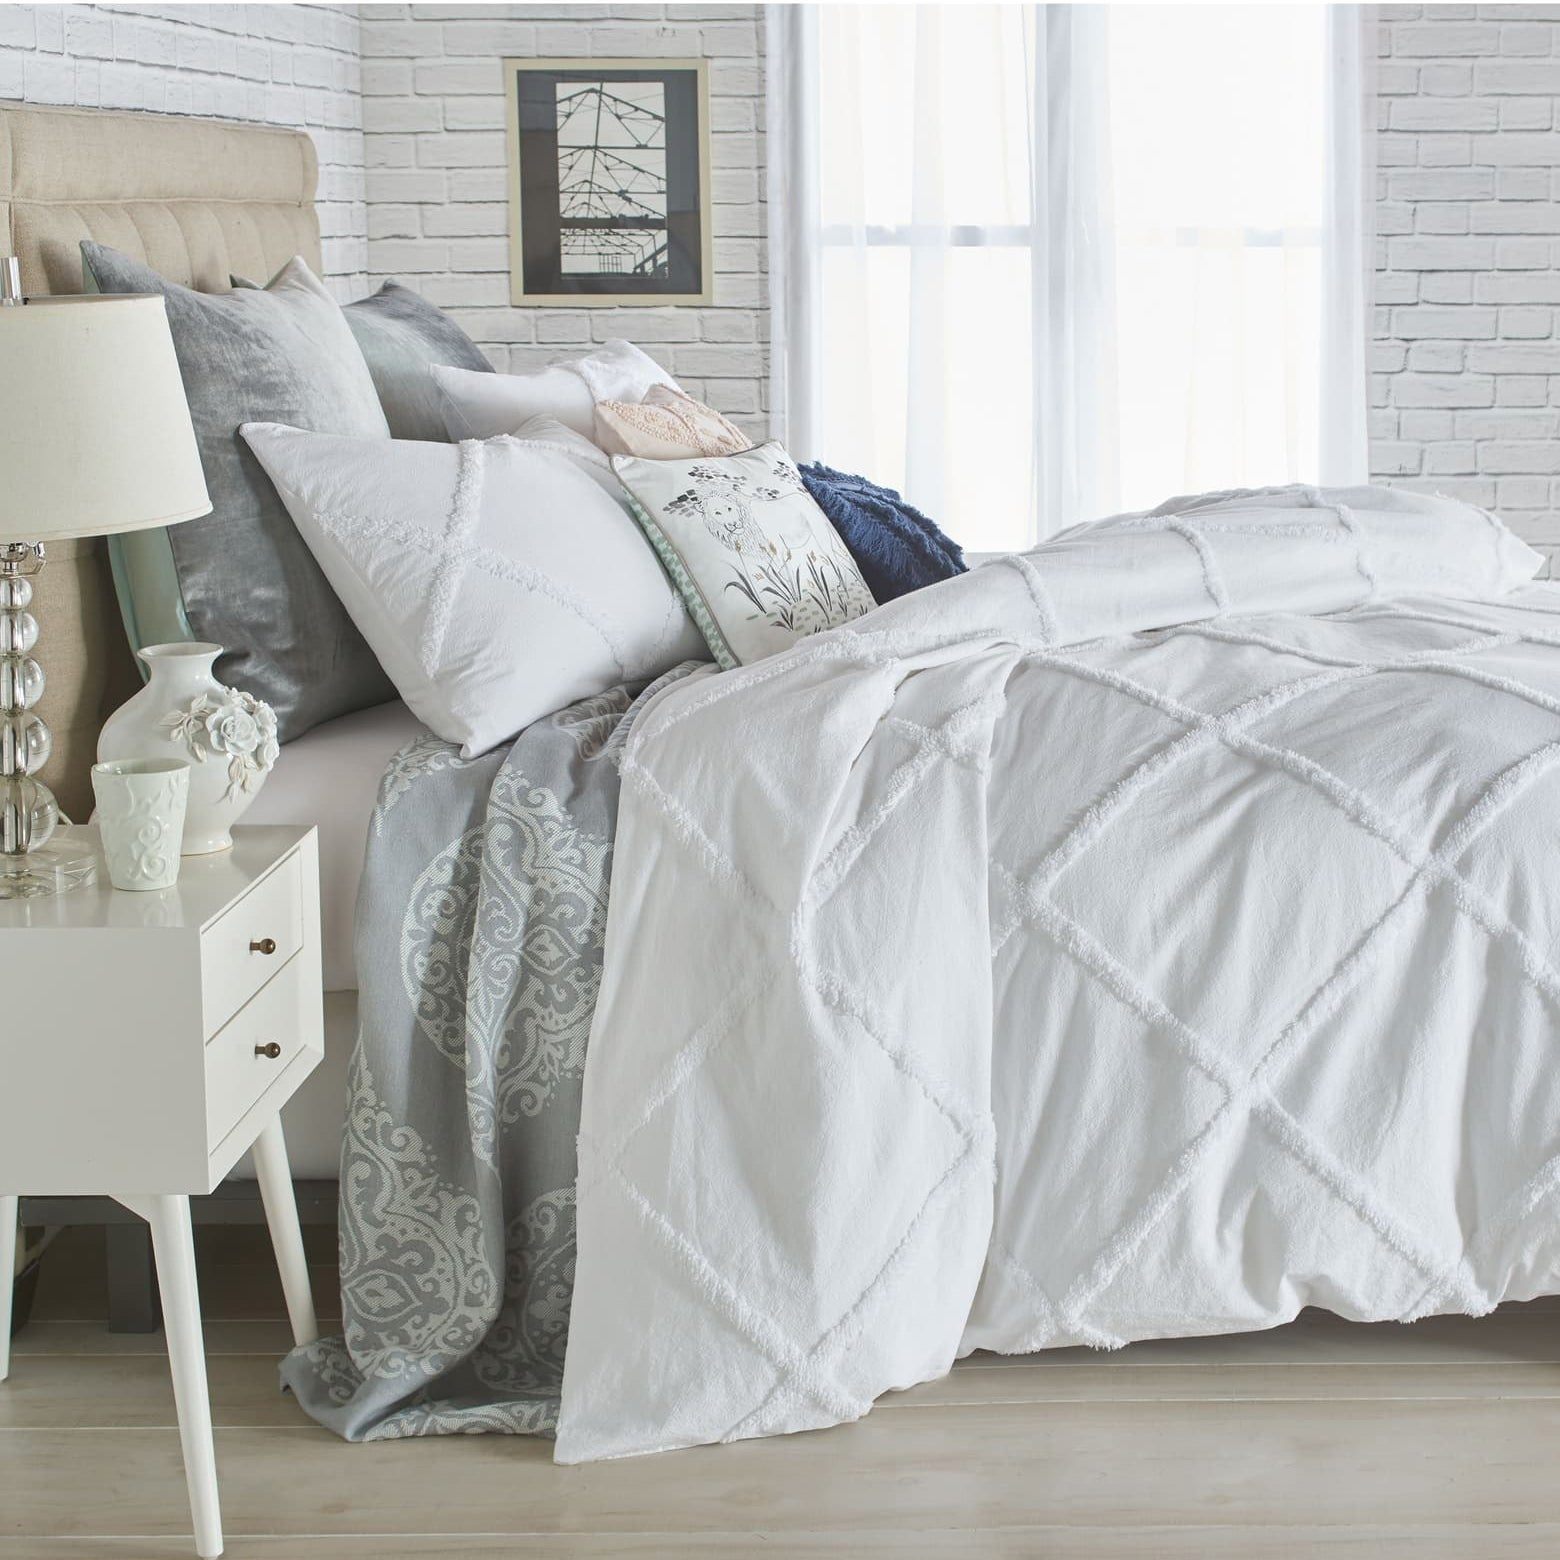 The white lattice duvet cover over a duvet on a bed with assorted pillows on it